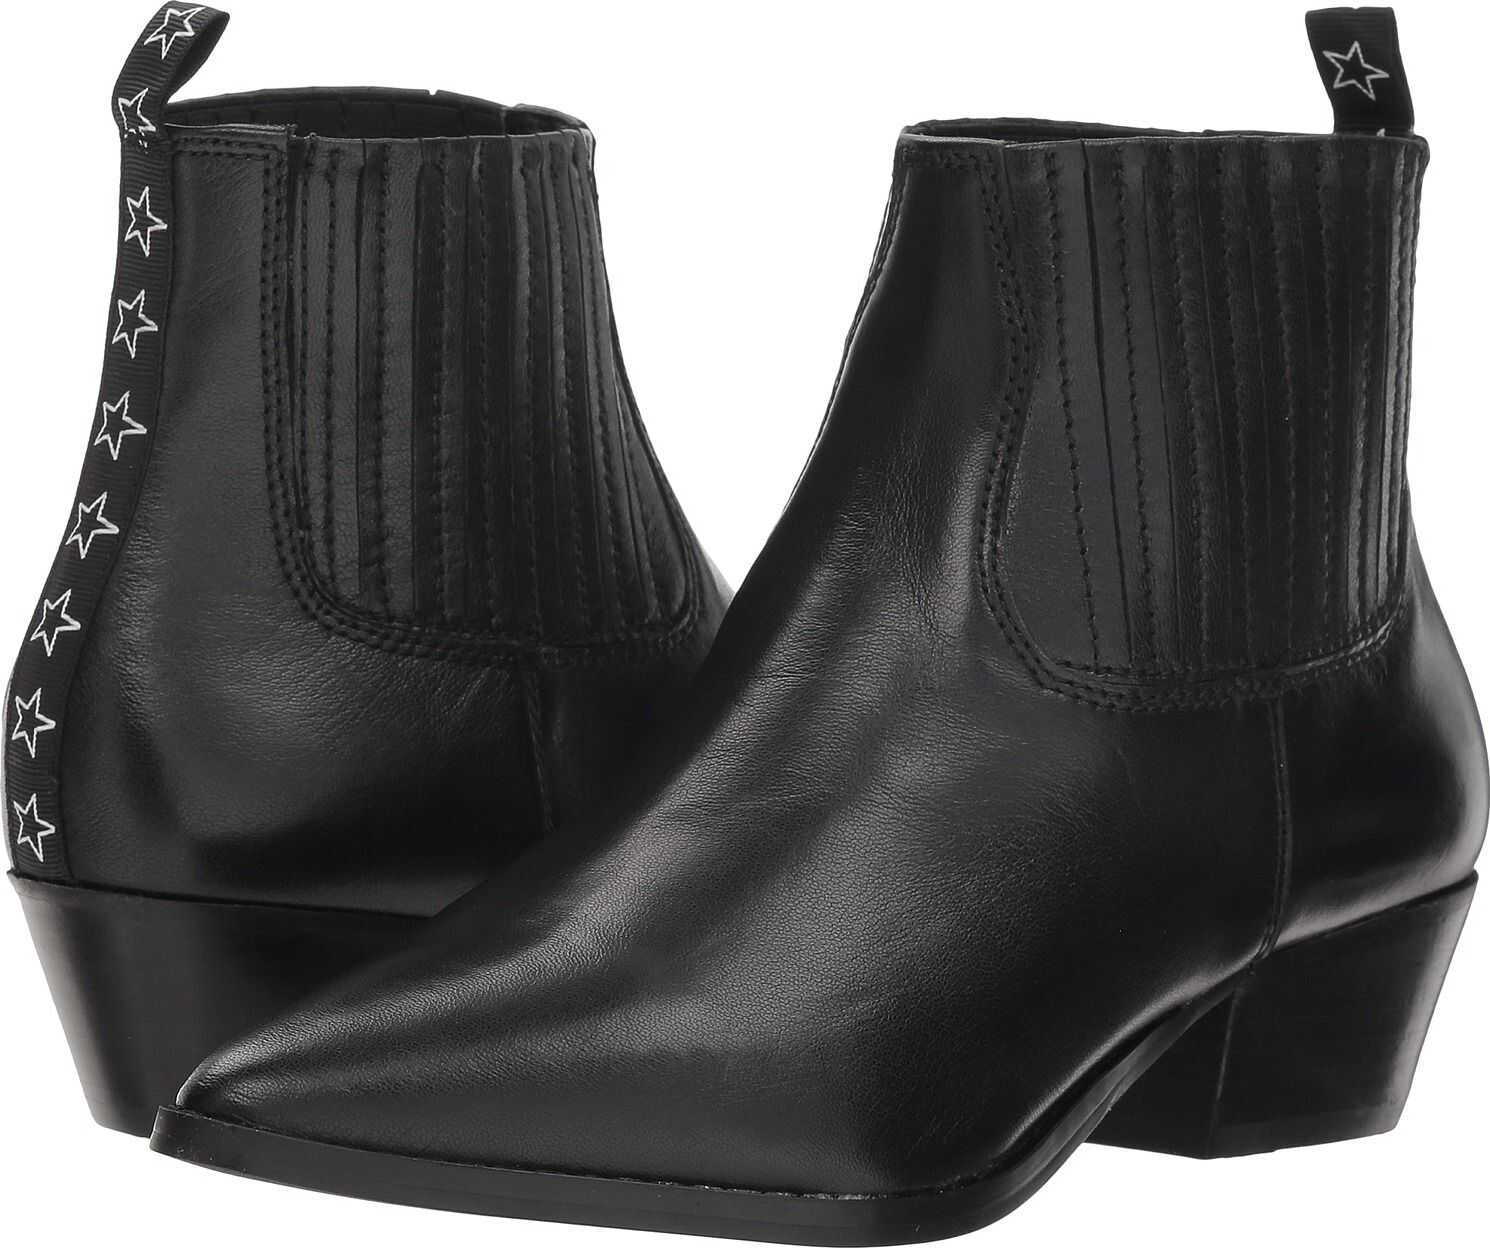 Steve Madden Westie Black Leather